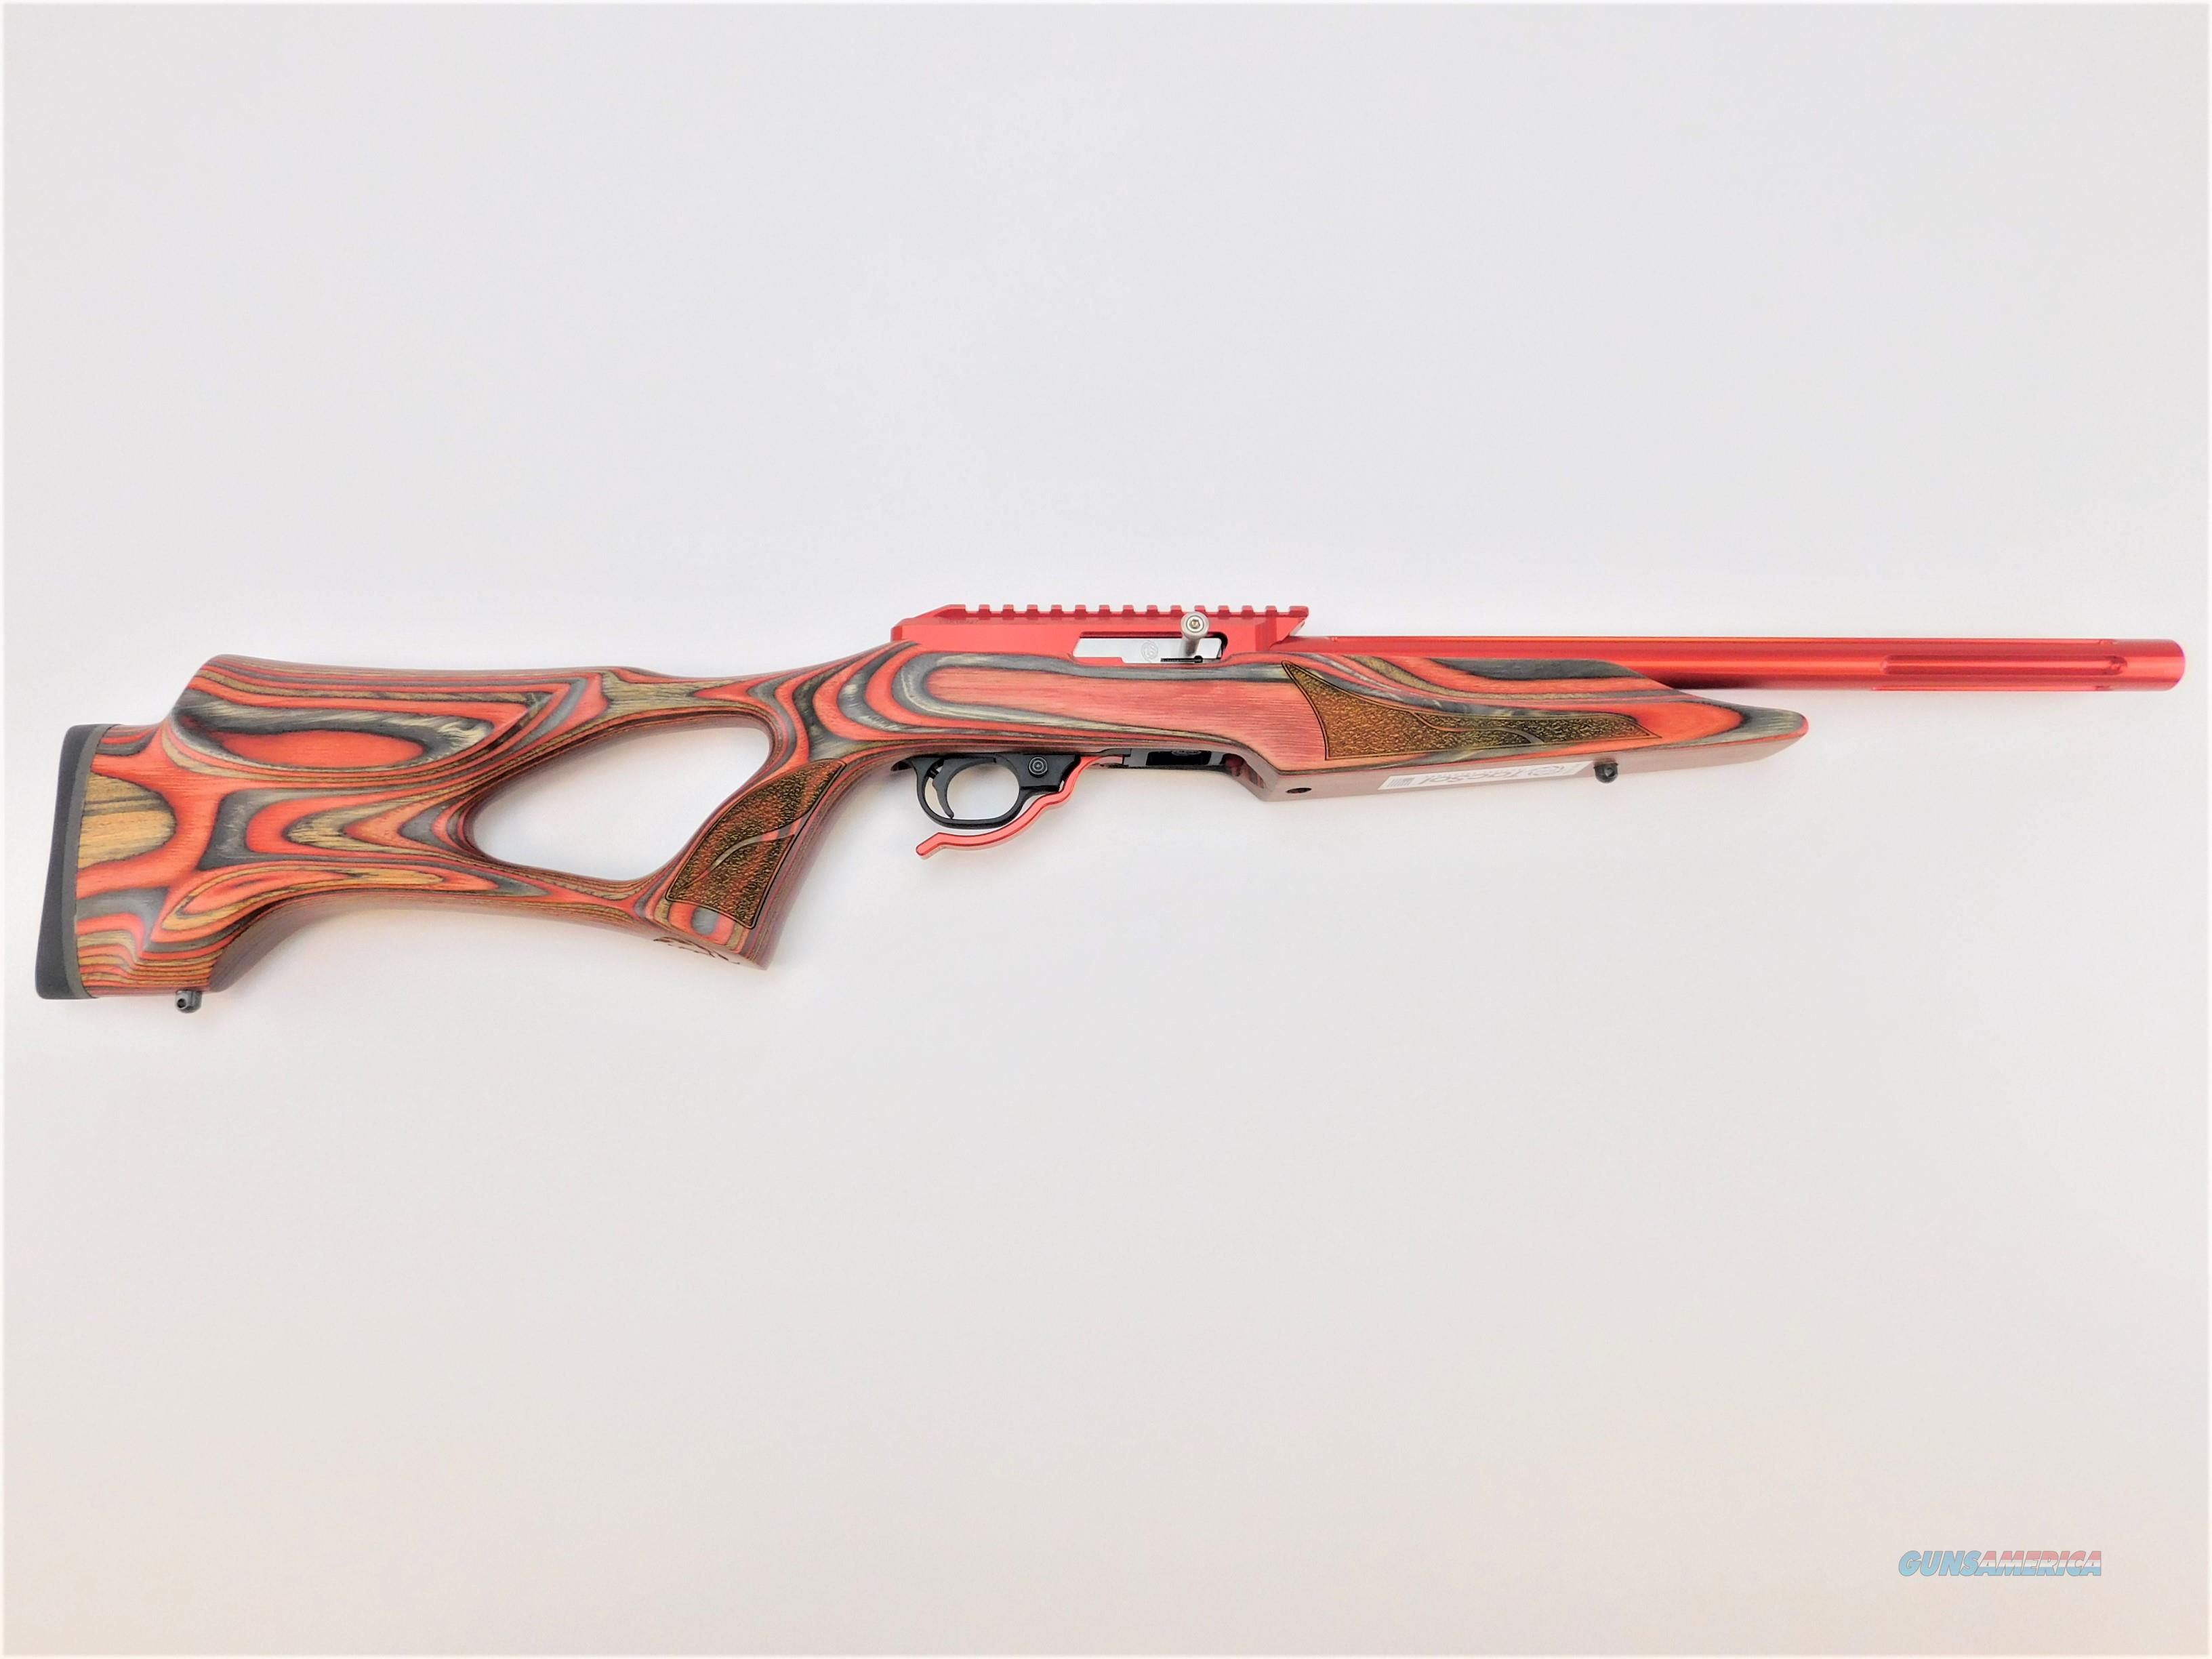 Tactical Solutions X-Ring Rifle .22 LR Vantage RS RED / CRIMSON 10/22 TE-RED-B-V-CRIM   Guns > Rifles > Ruger Rifles > 10-22